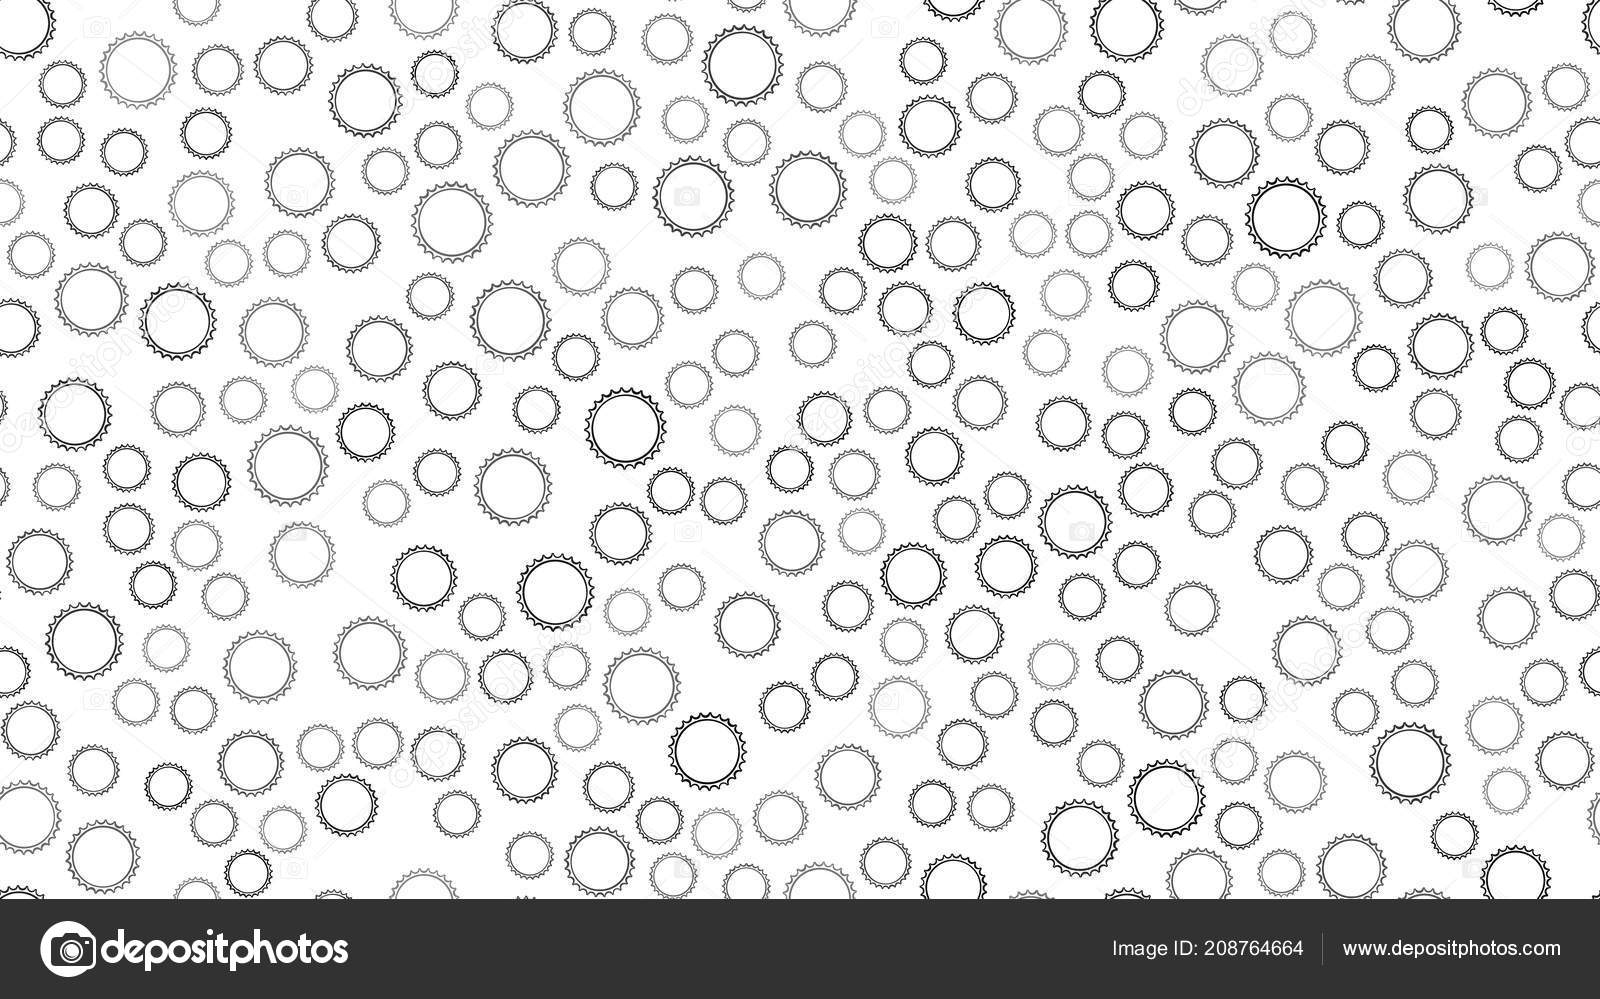 Texture seamless pattern of black round abstract carved metal beer